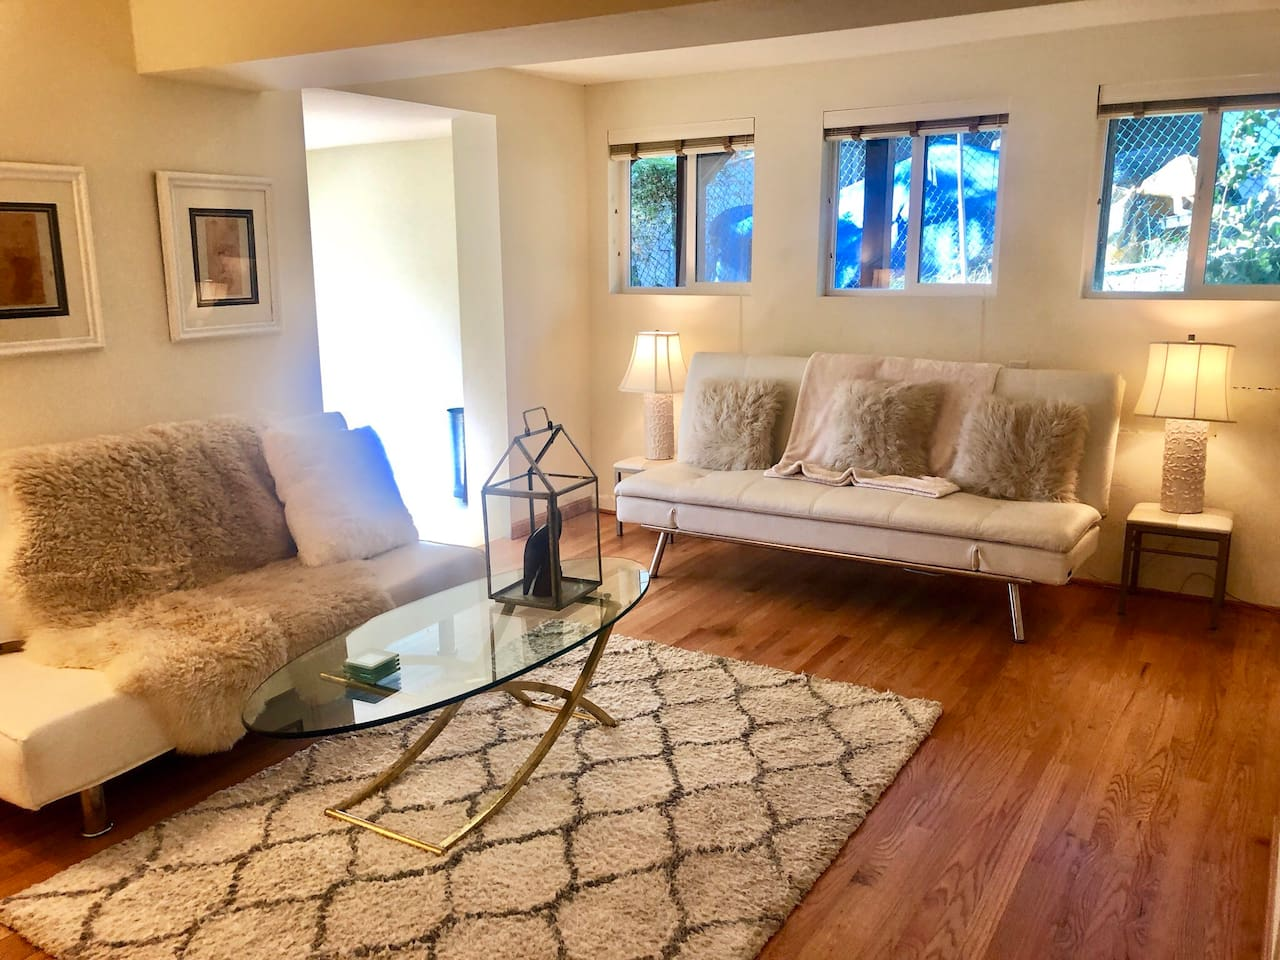 Cozy living room, these sofas fold flat for a queen size bed and an incredibly comfortable feather bed topper to put down before the sheets makes this a perfect option for more guests